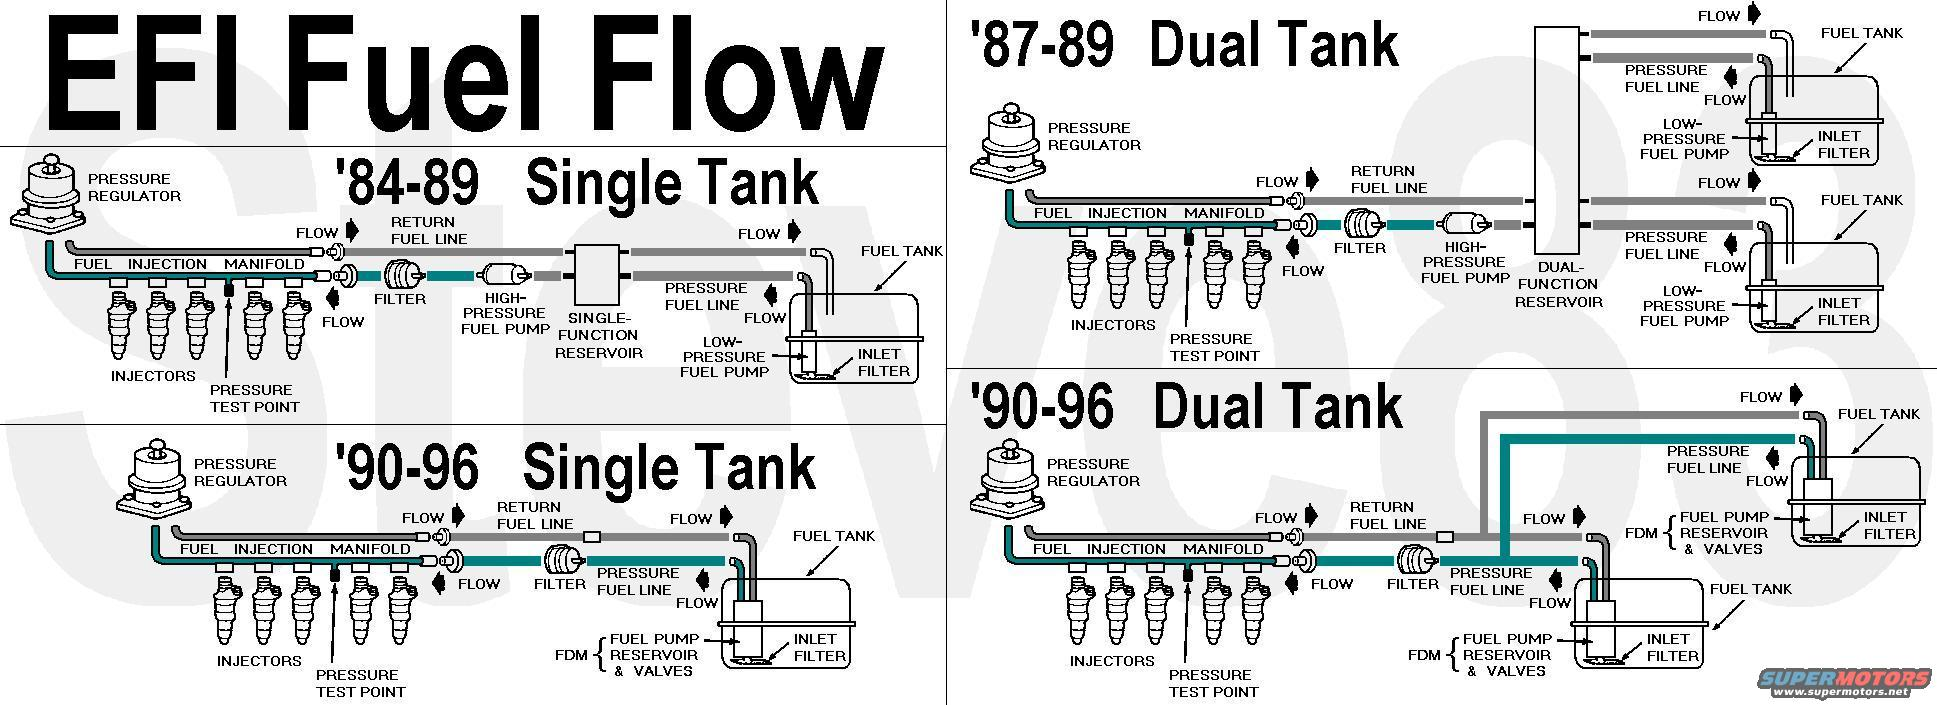 1996 Ford F150 Fuel Pump Wiring Diagram Electronicswiring Together With 1995 F 150 F200 Underhood Fuse Box